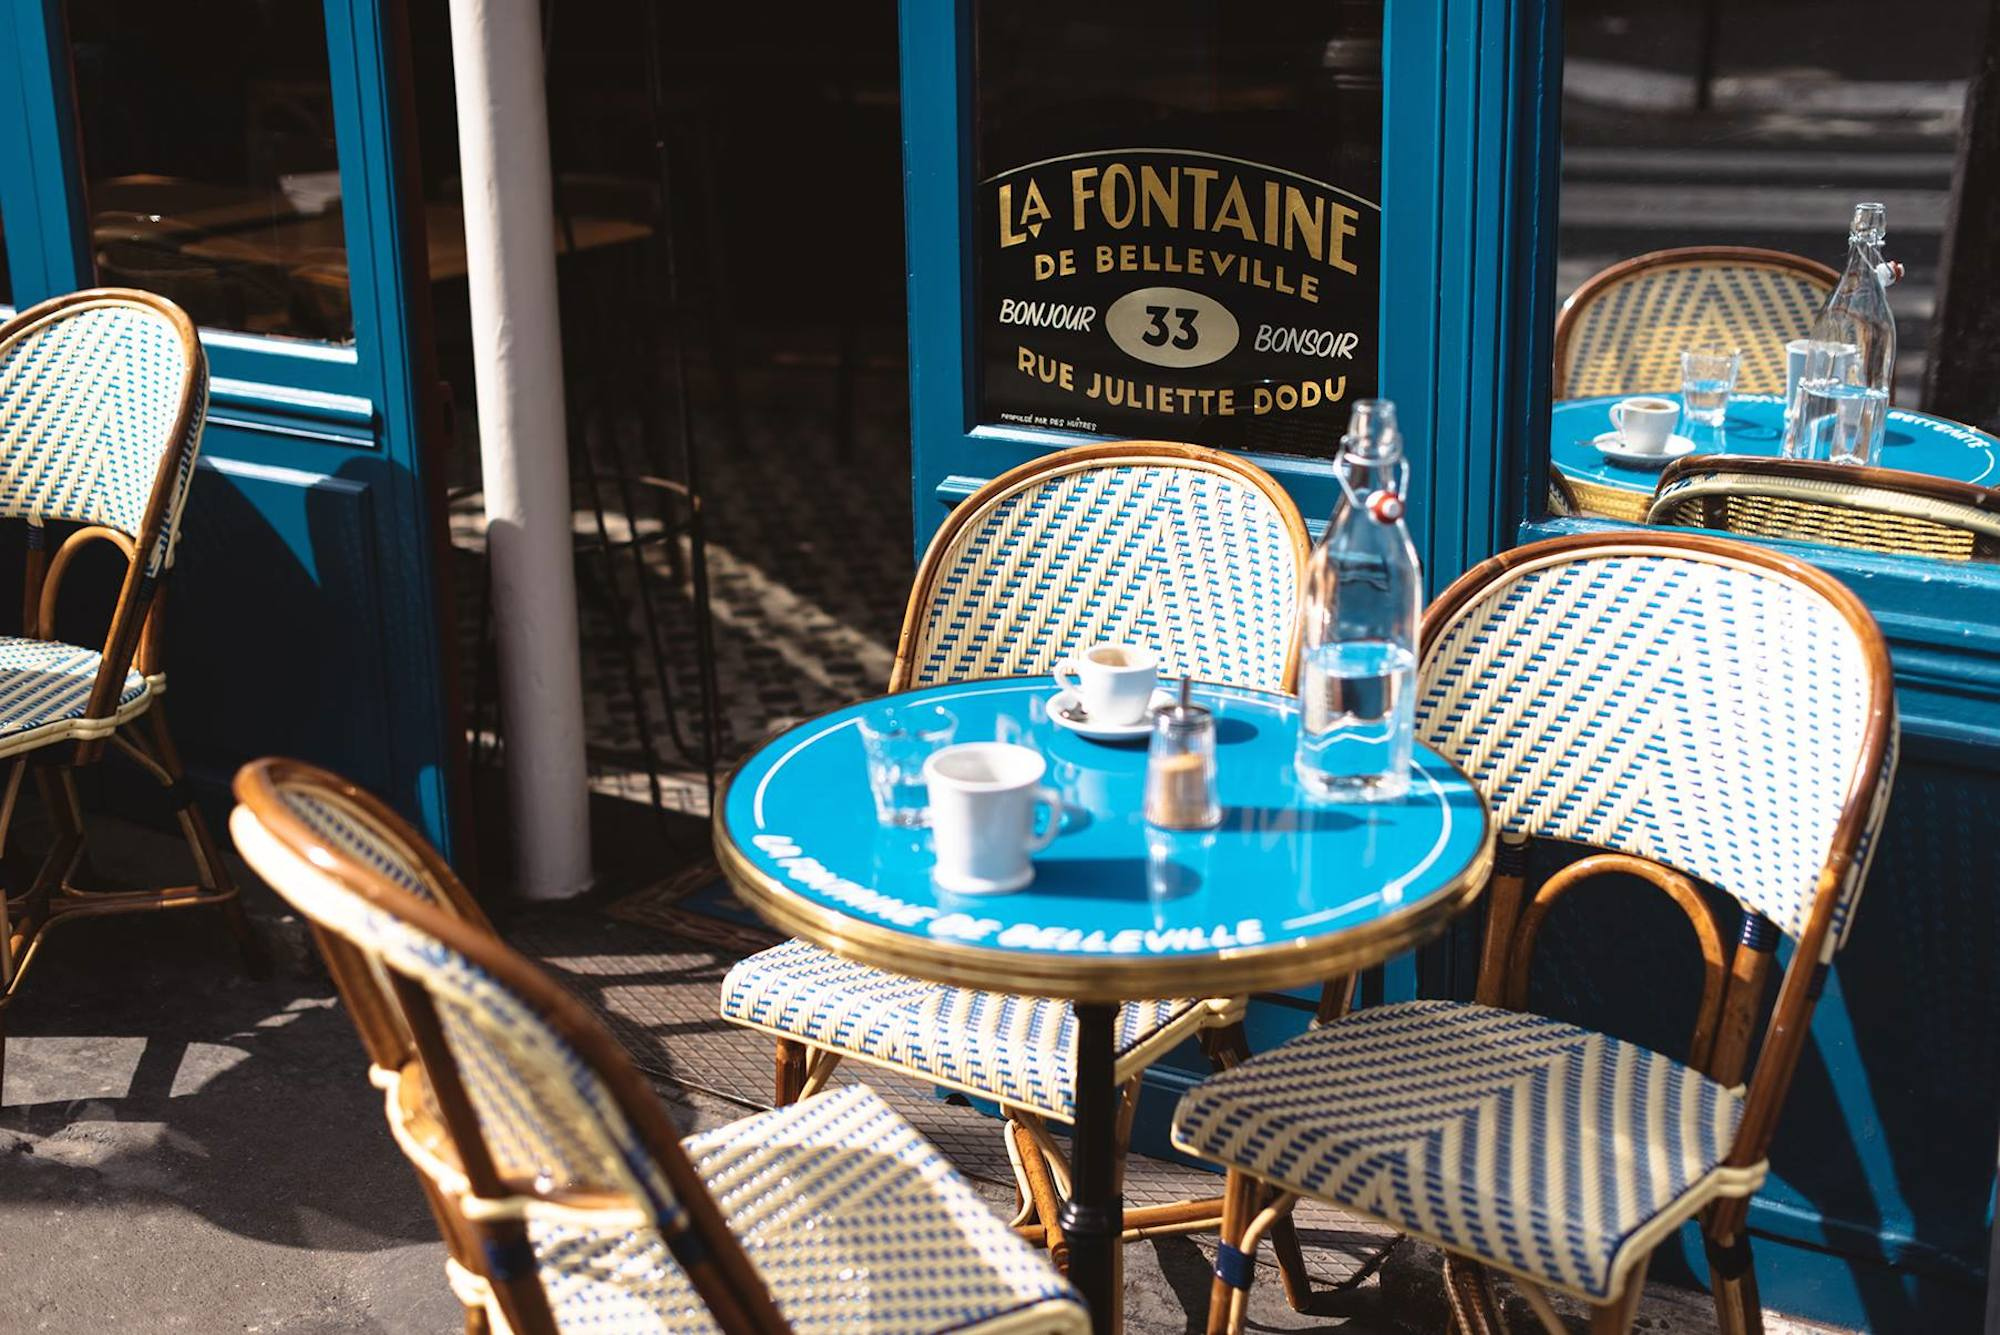 HiP Paris Blog rounds up the top brunch spots in Paris